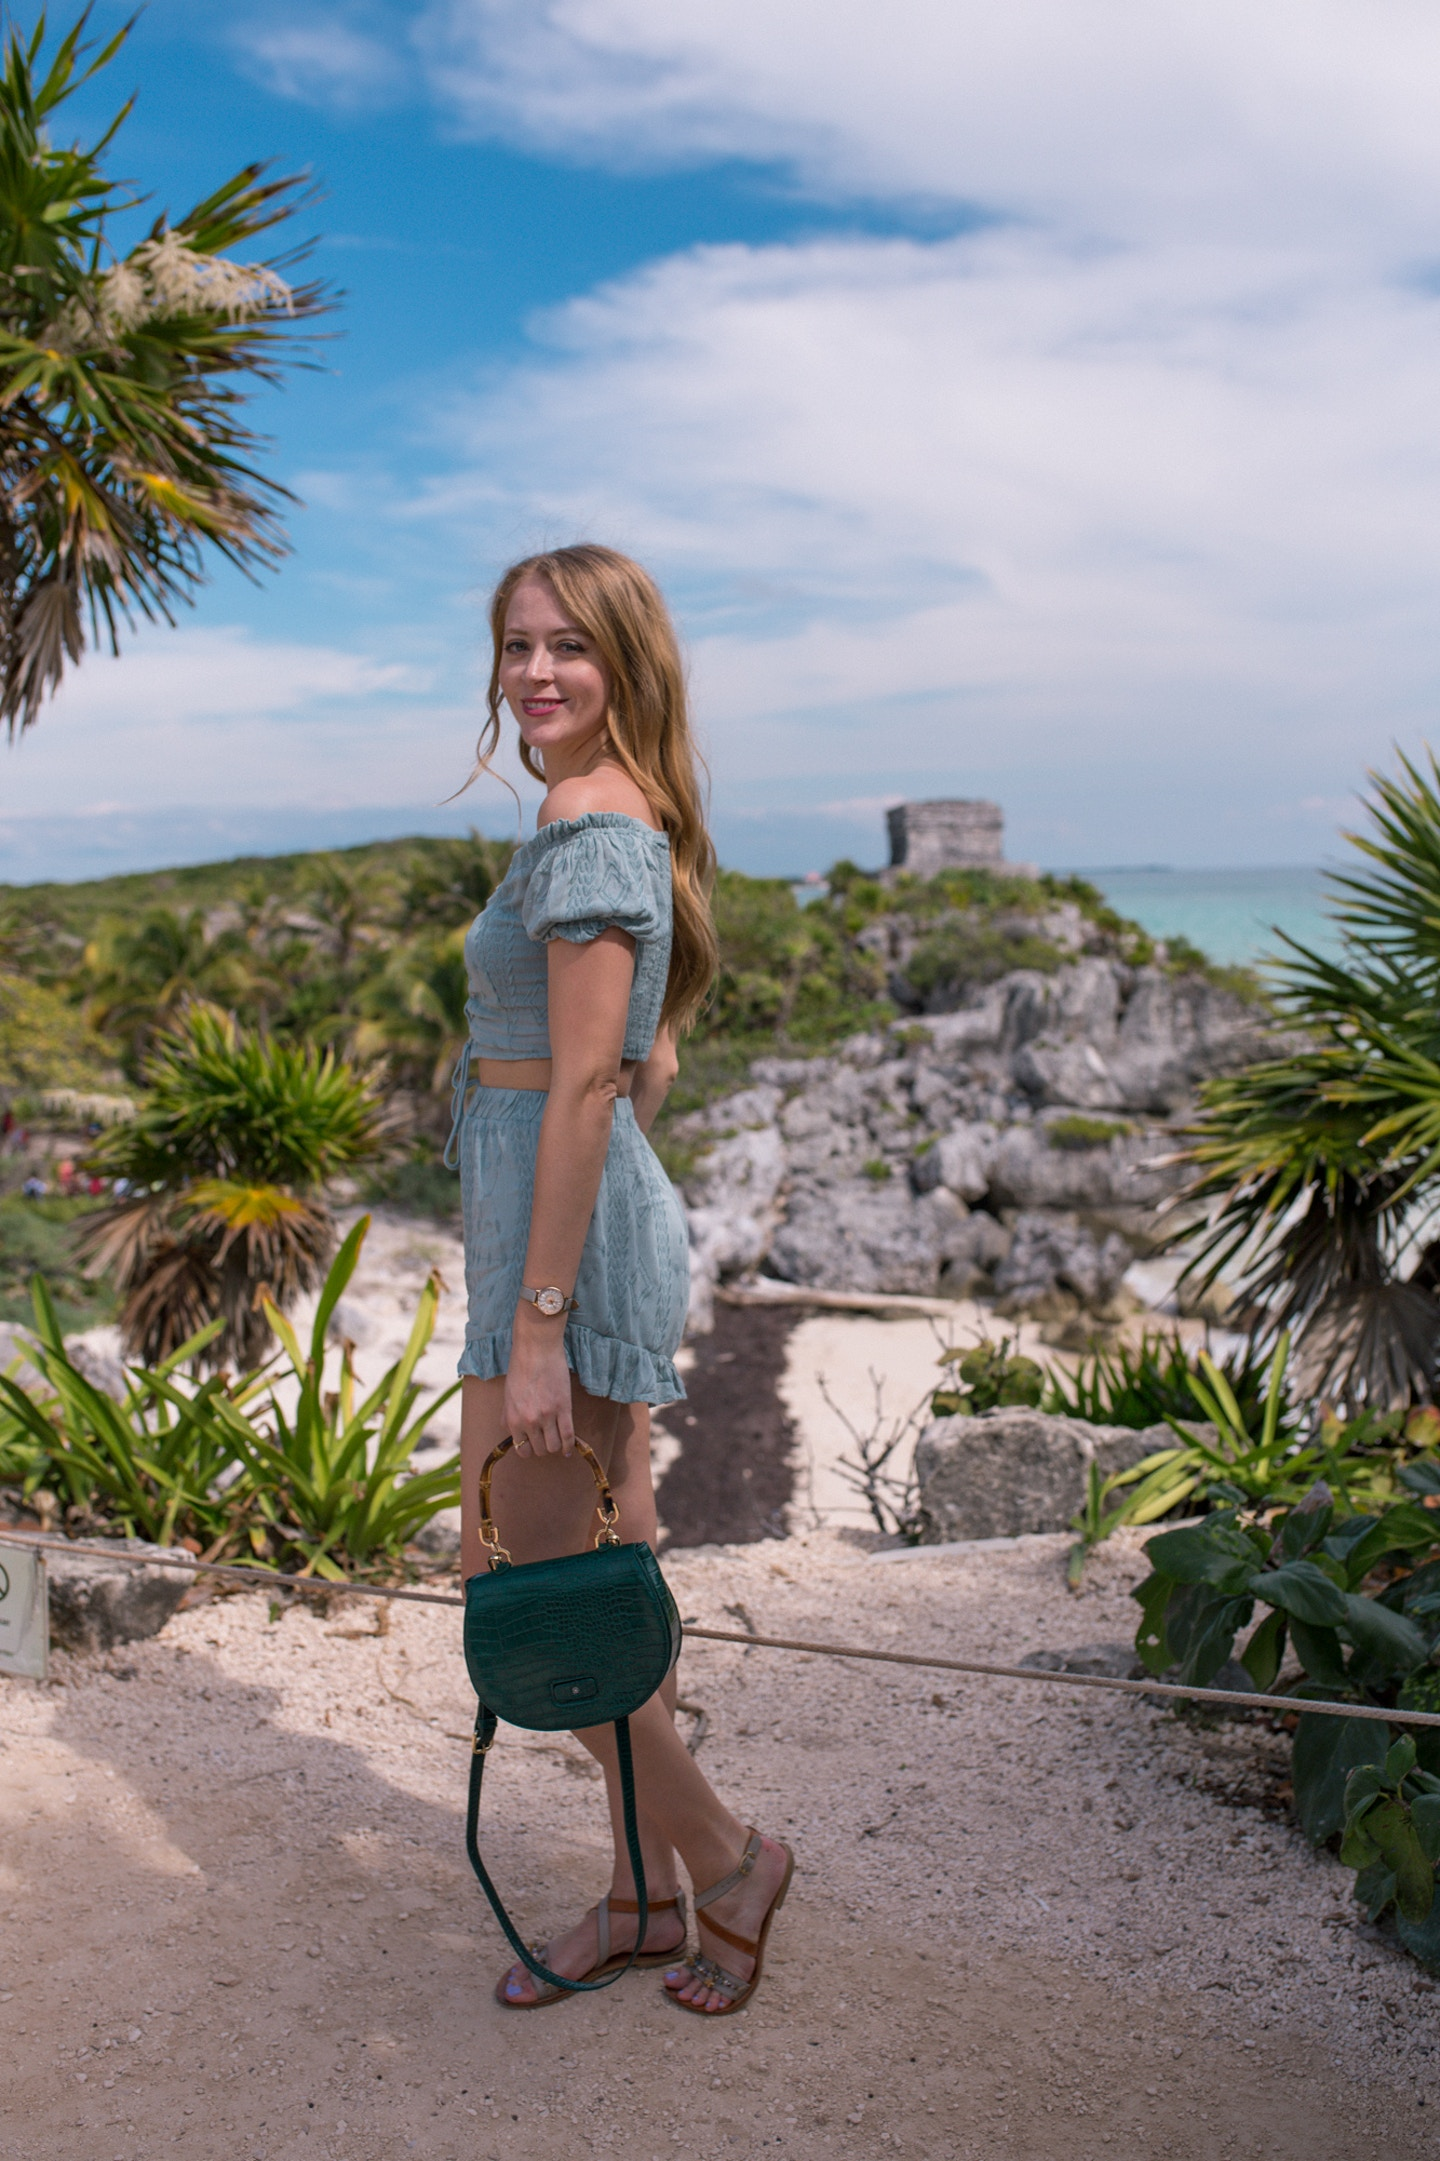 10 Helpful Tips for Visiting Tulum, Mexico